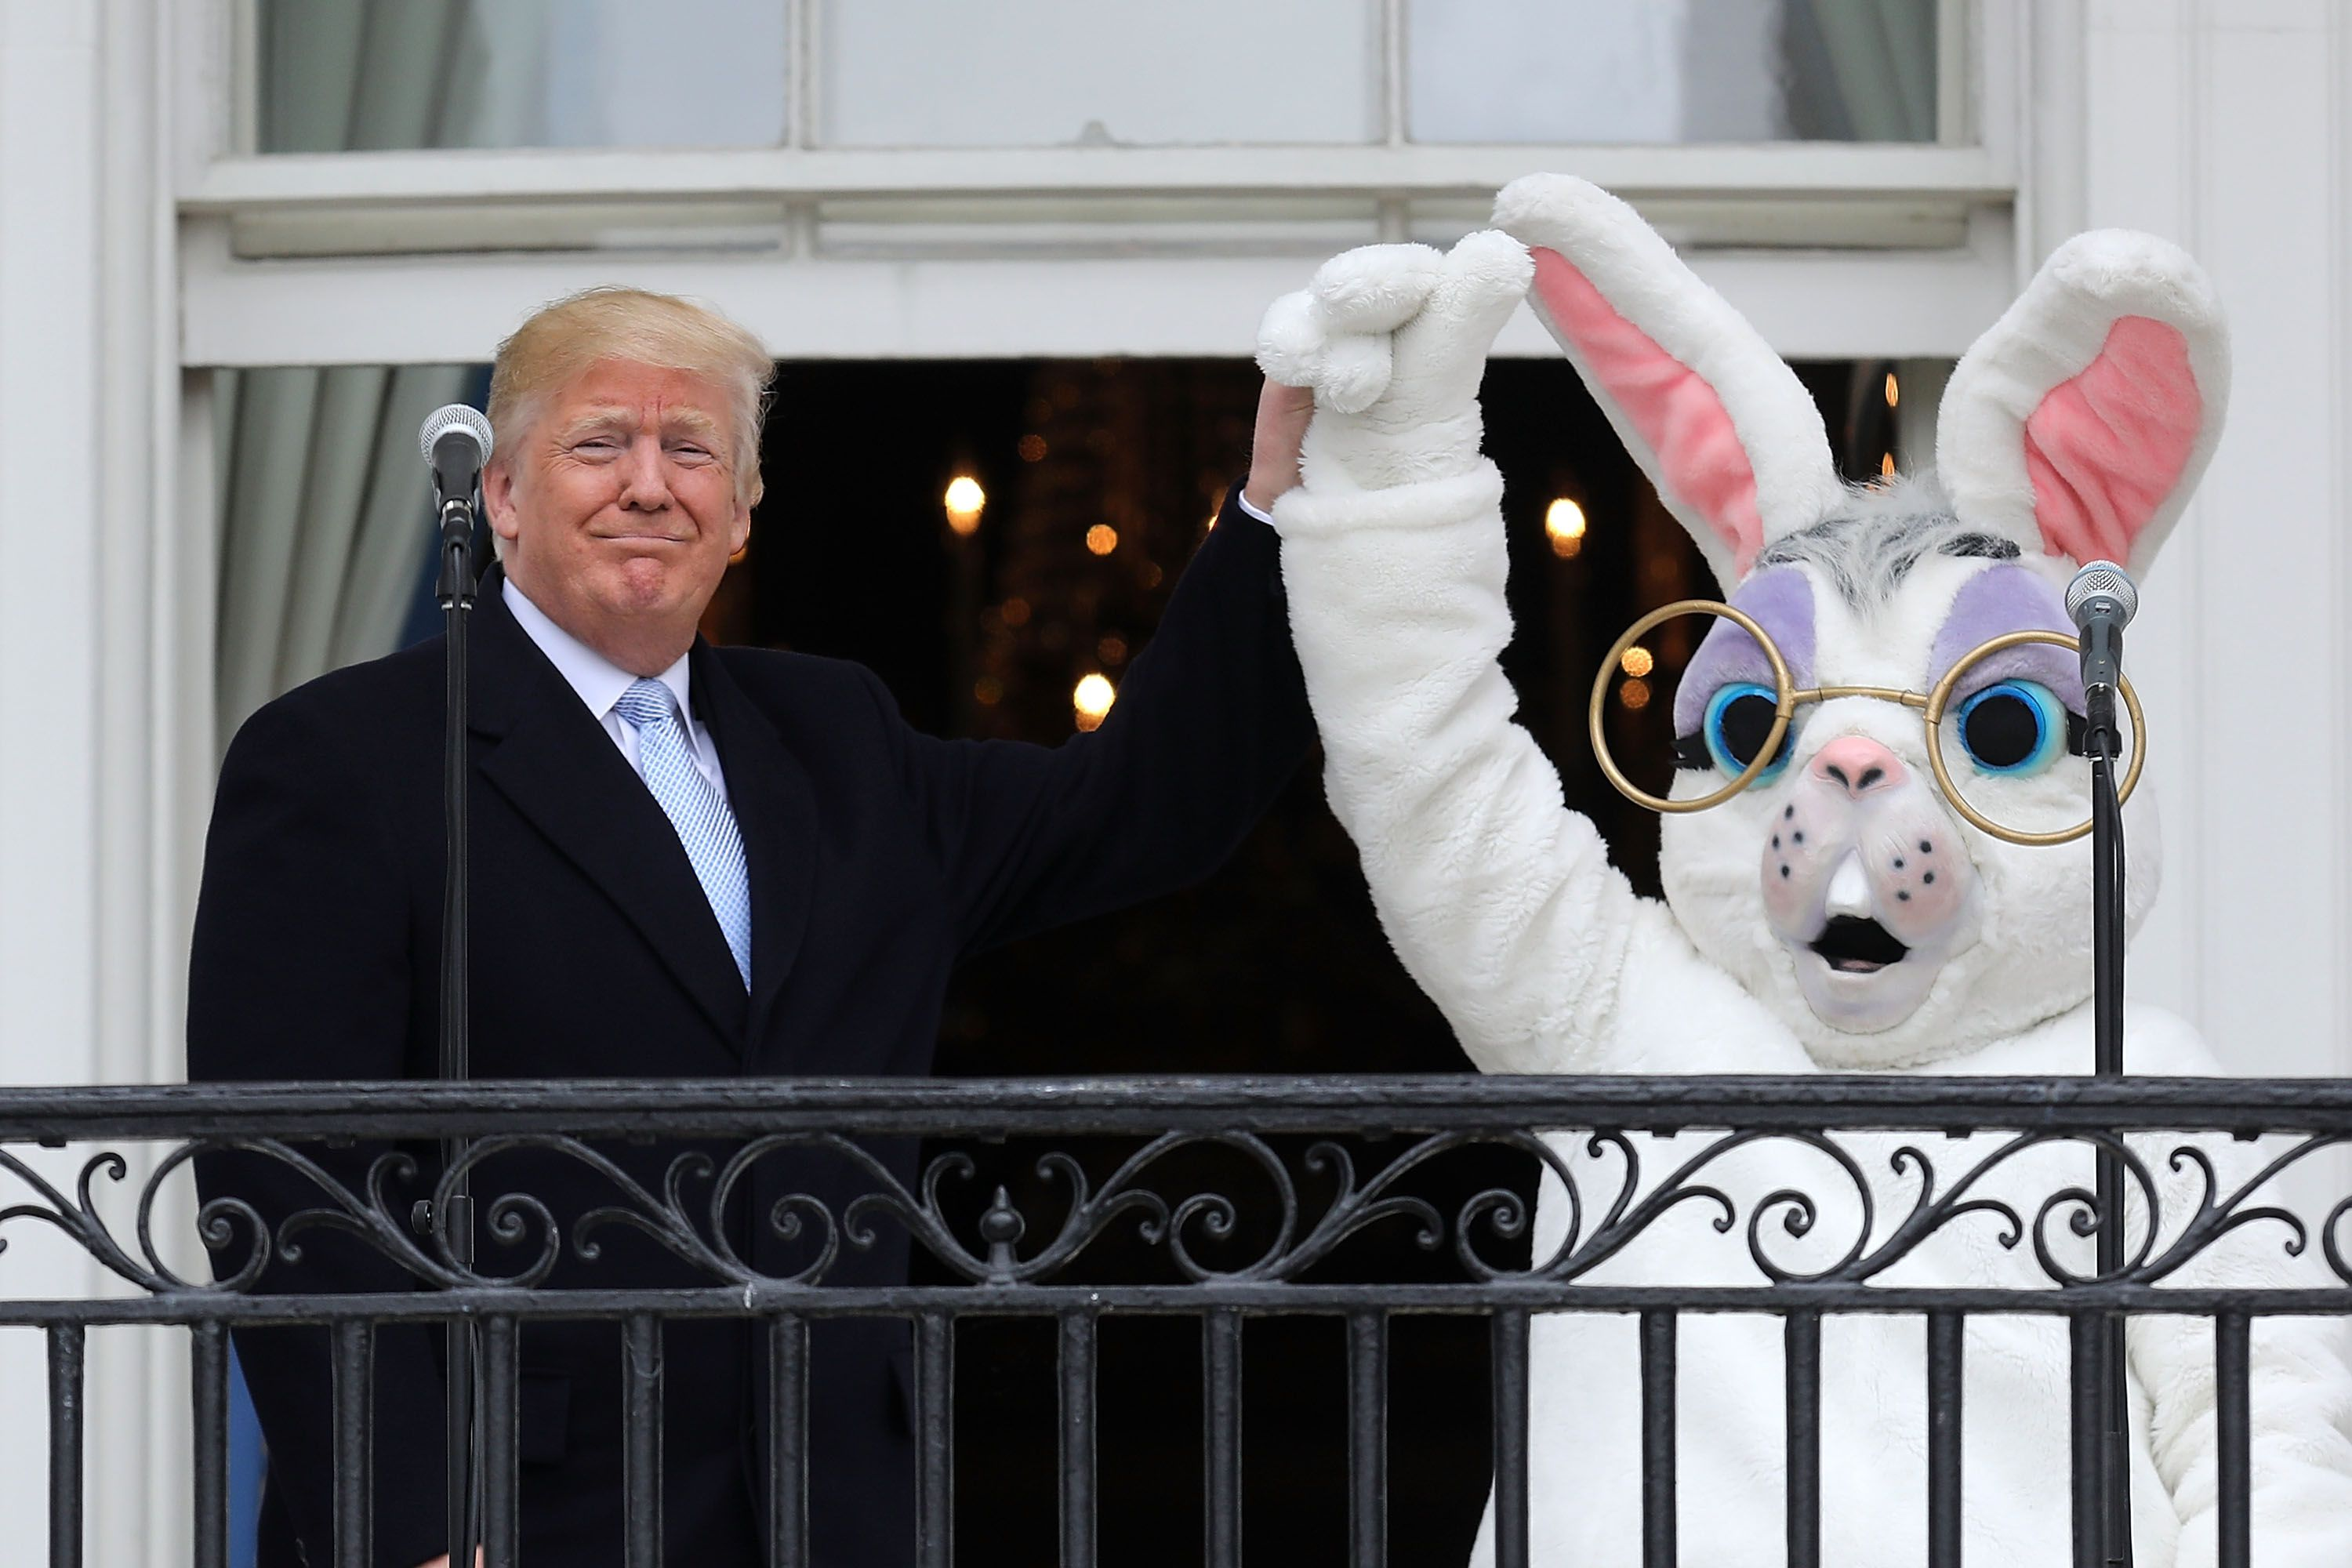 Donald Trump and the Easter bunny